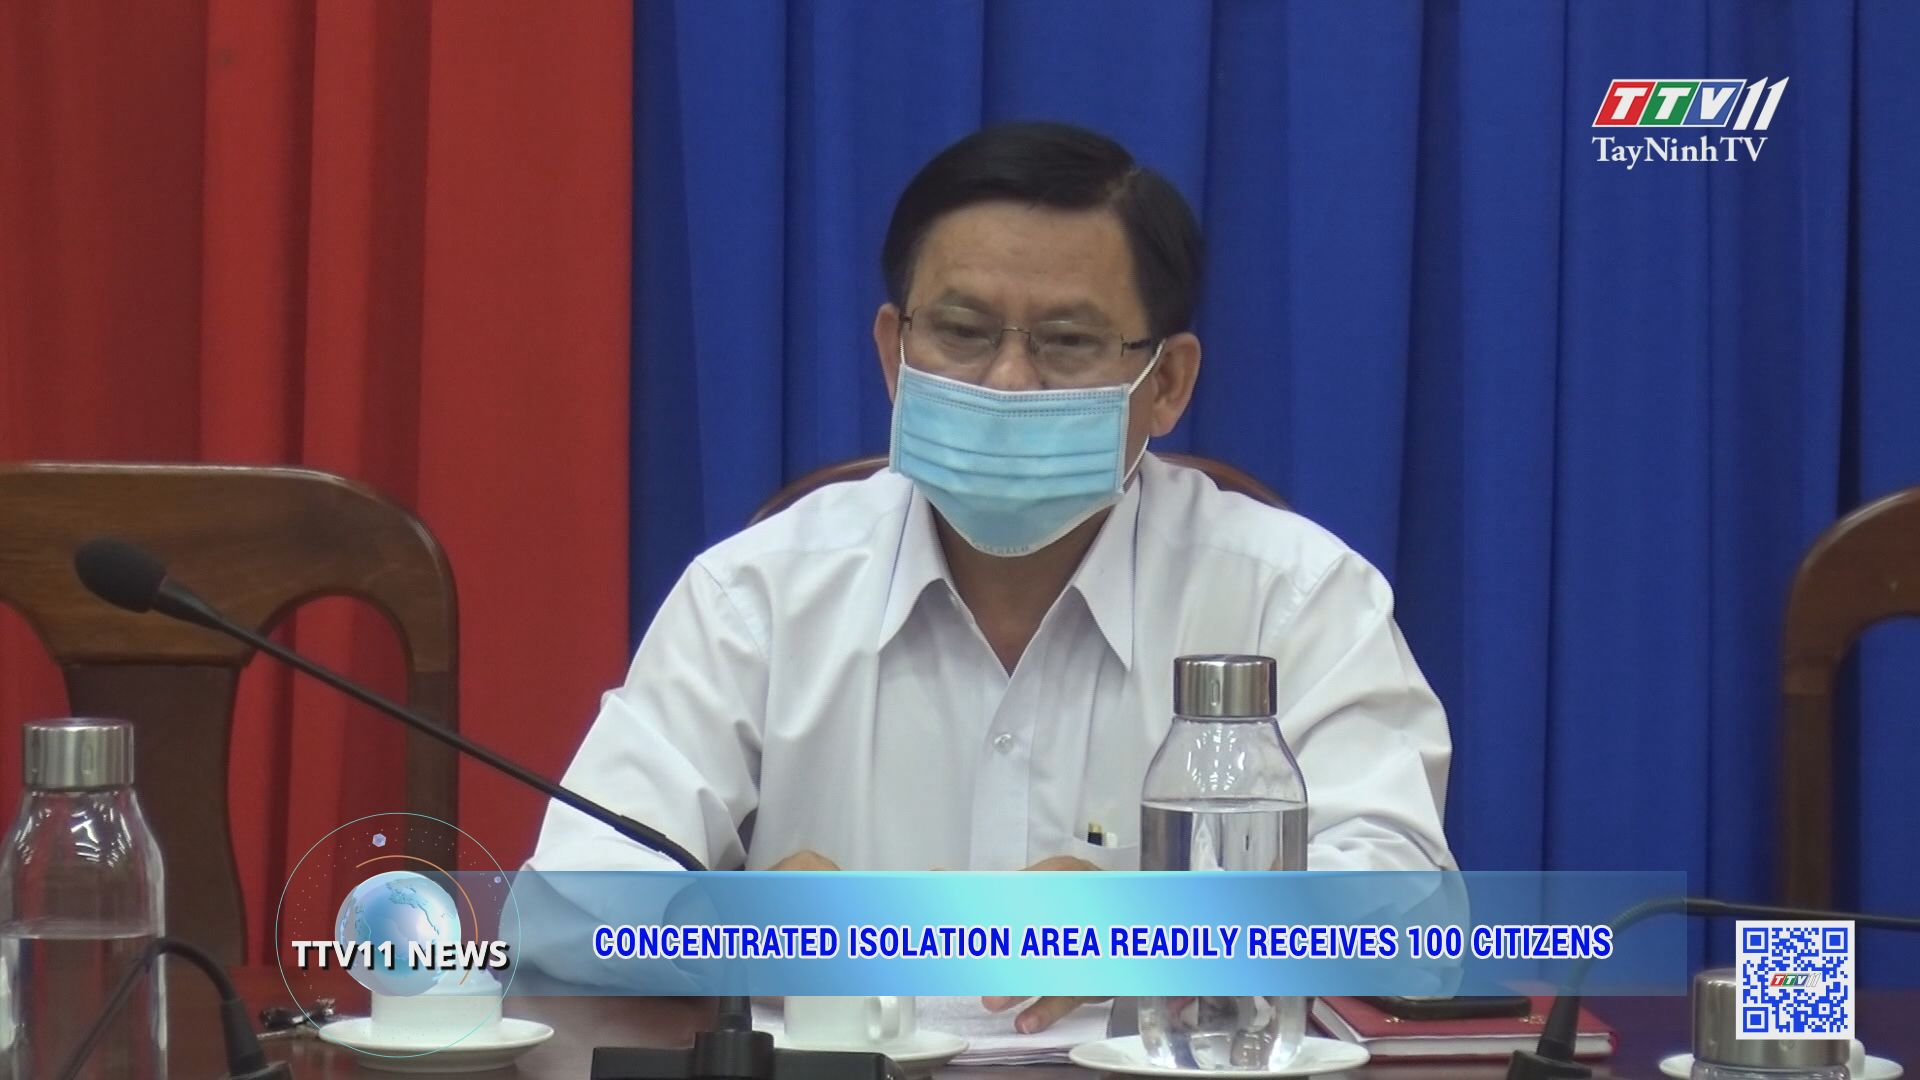 Concentrated isolation area readily receives 100 citizens   TTVNEWS   TayNinhTV Today